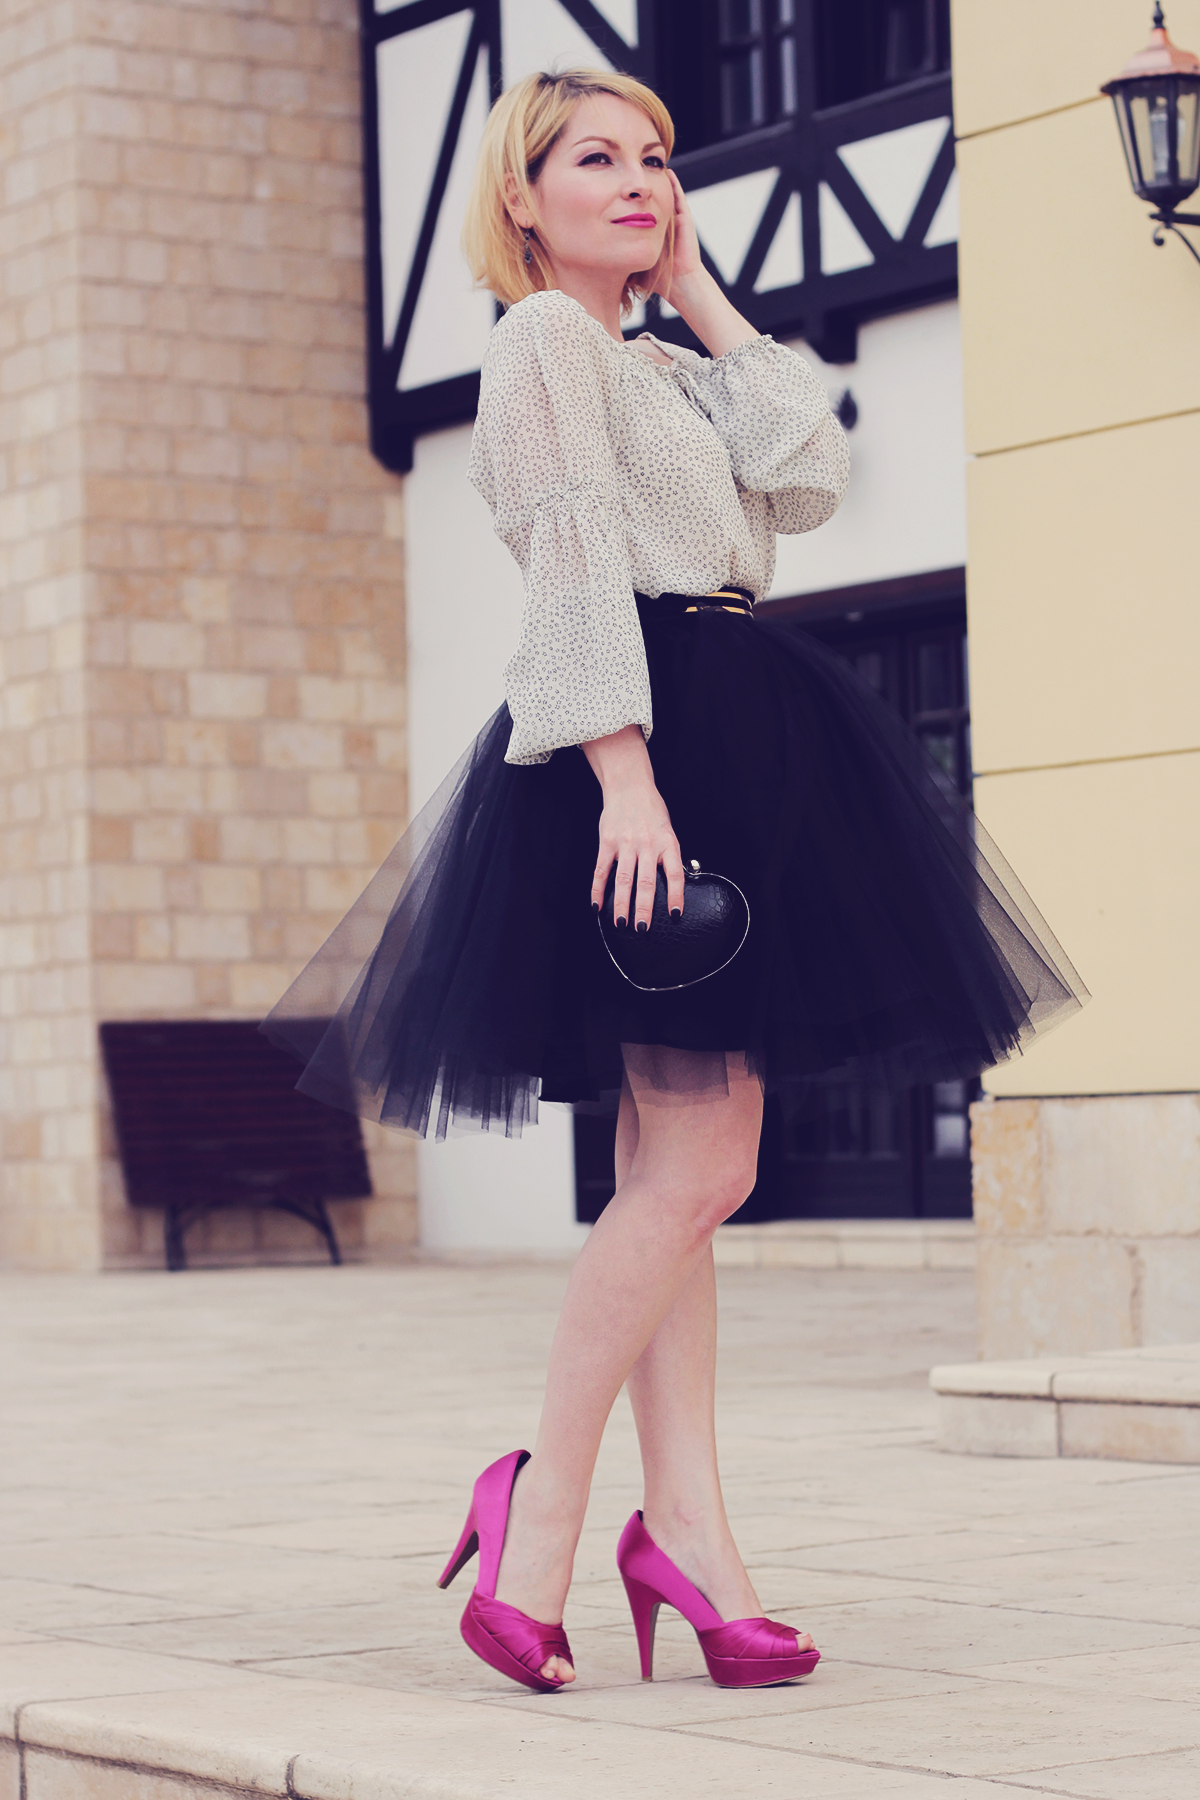 once upon a time a ballerina � the tulle skirt � the